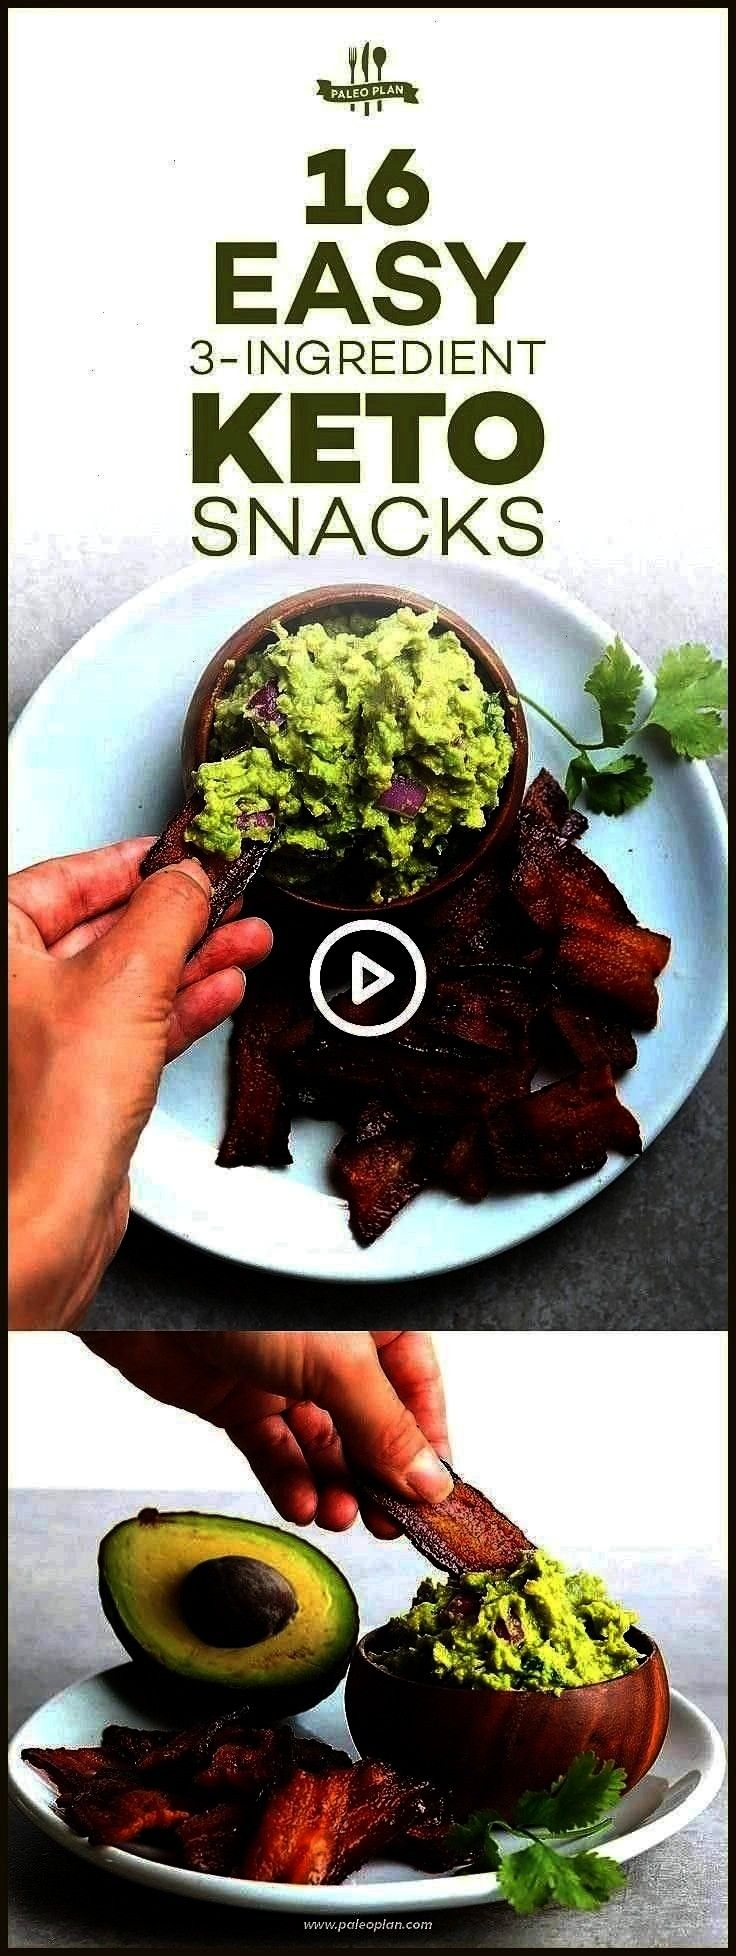 appetizers Rezepte avocado 16 Quick and Easy Keto Snacks with Just 3 Ingredients ketostarbucksdrink